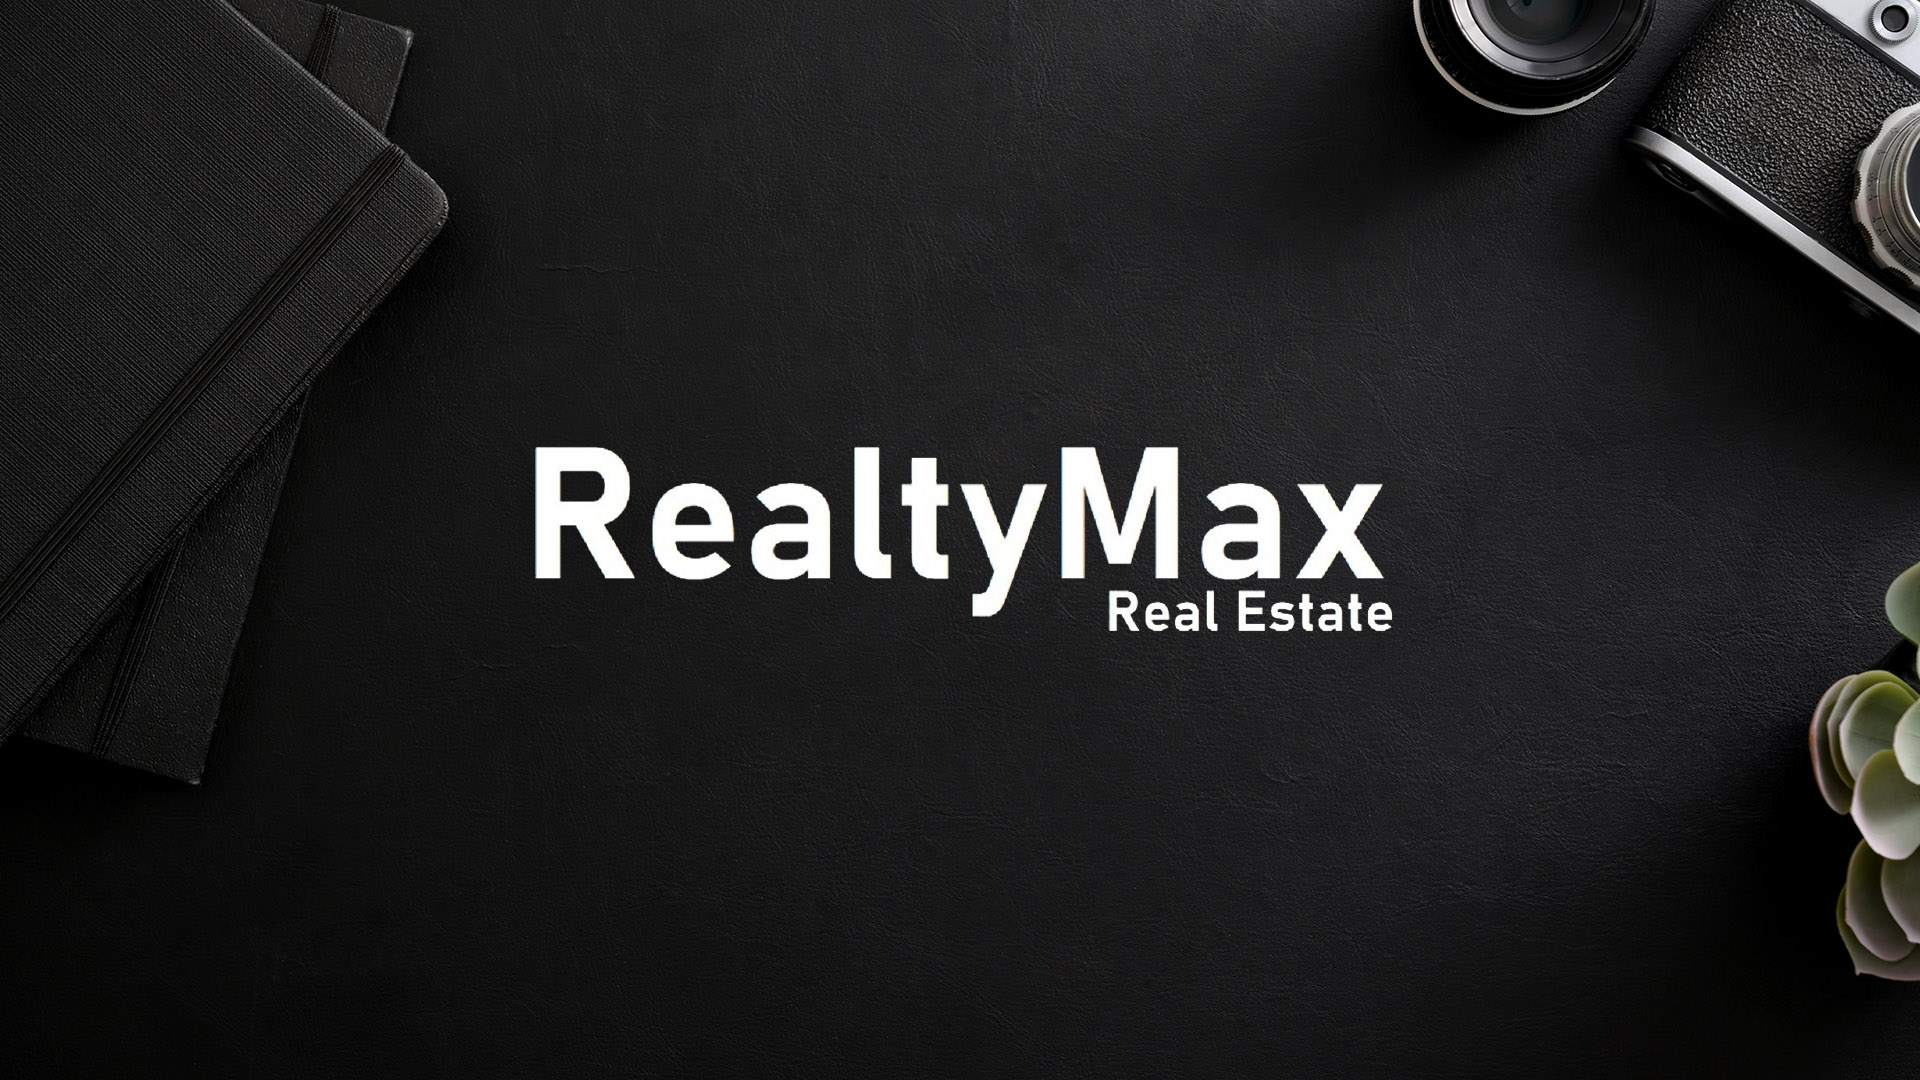 About Realty Max